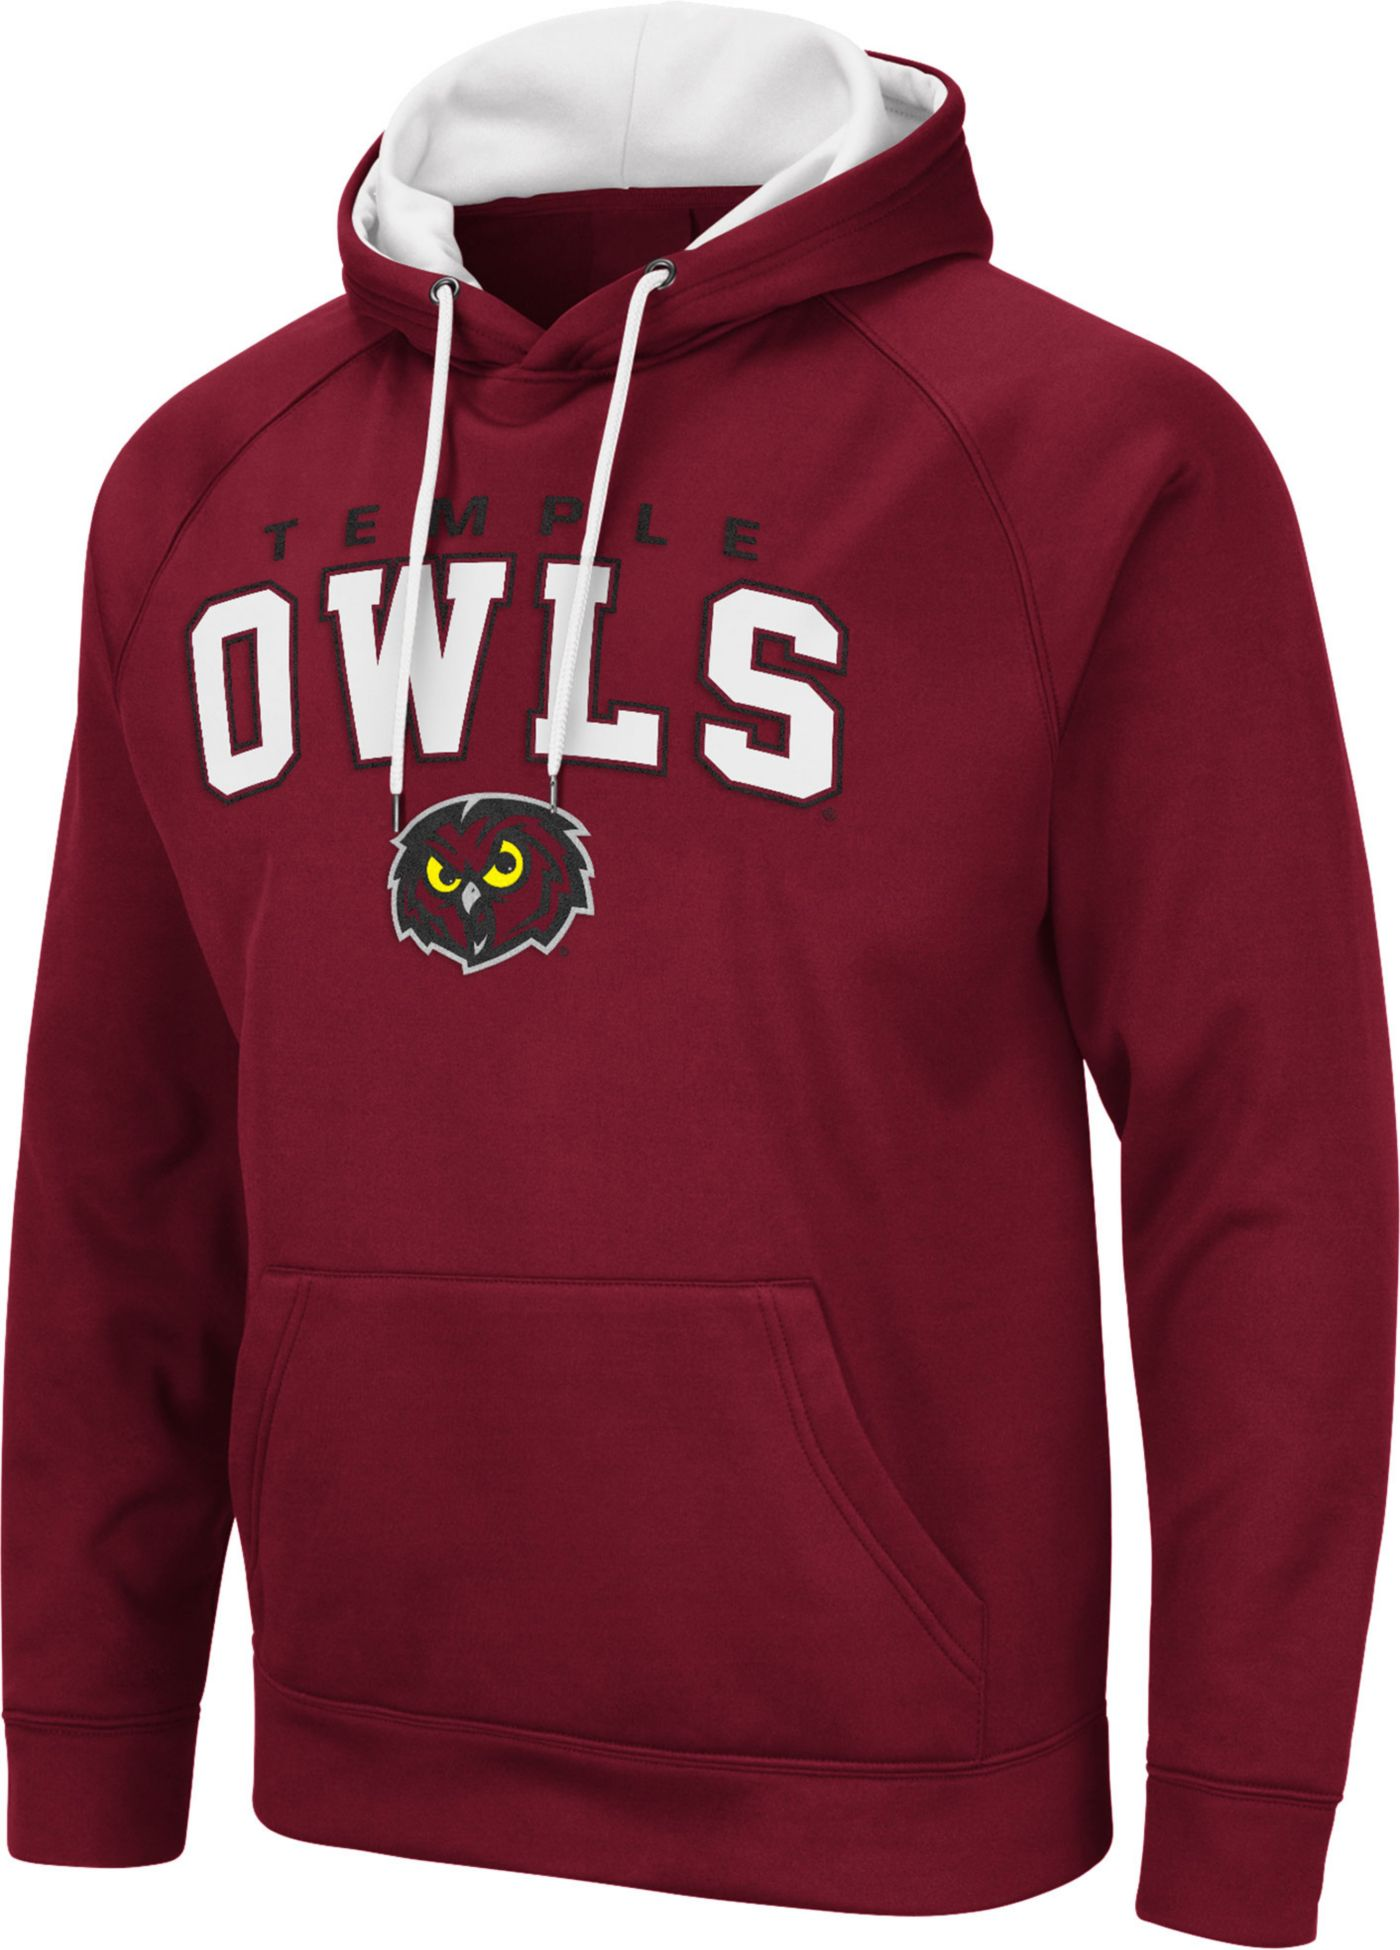 Colosseum Men's Temple Owls Green Pullover Hoodie